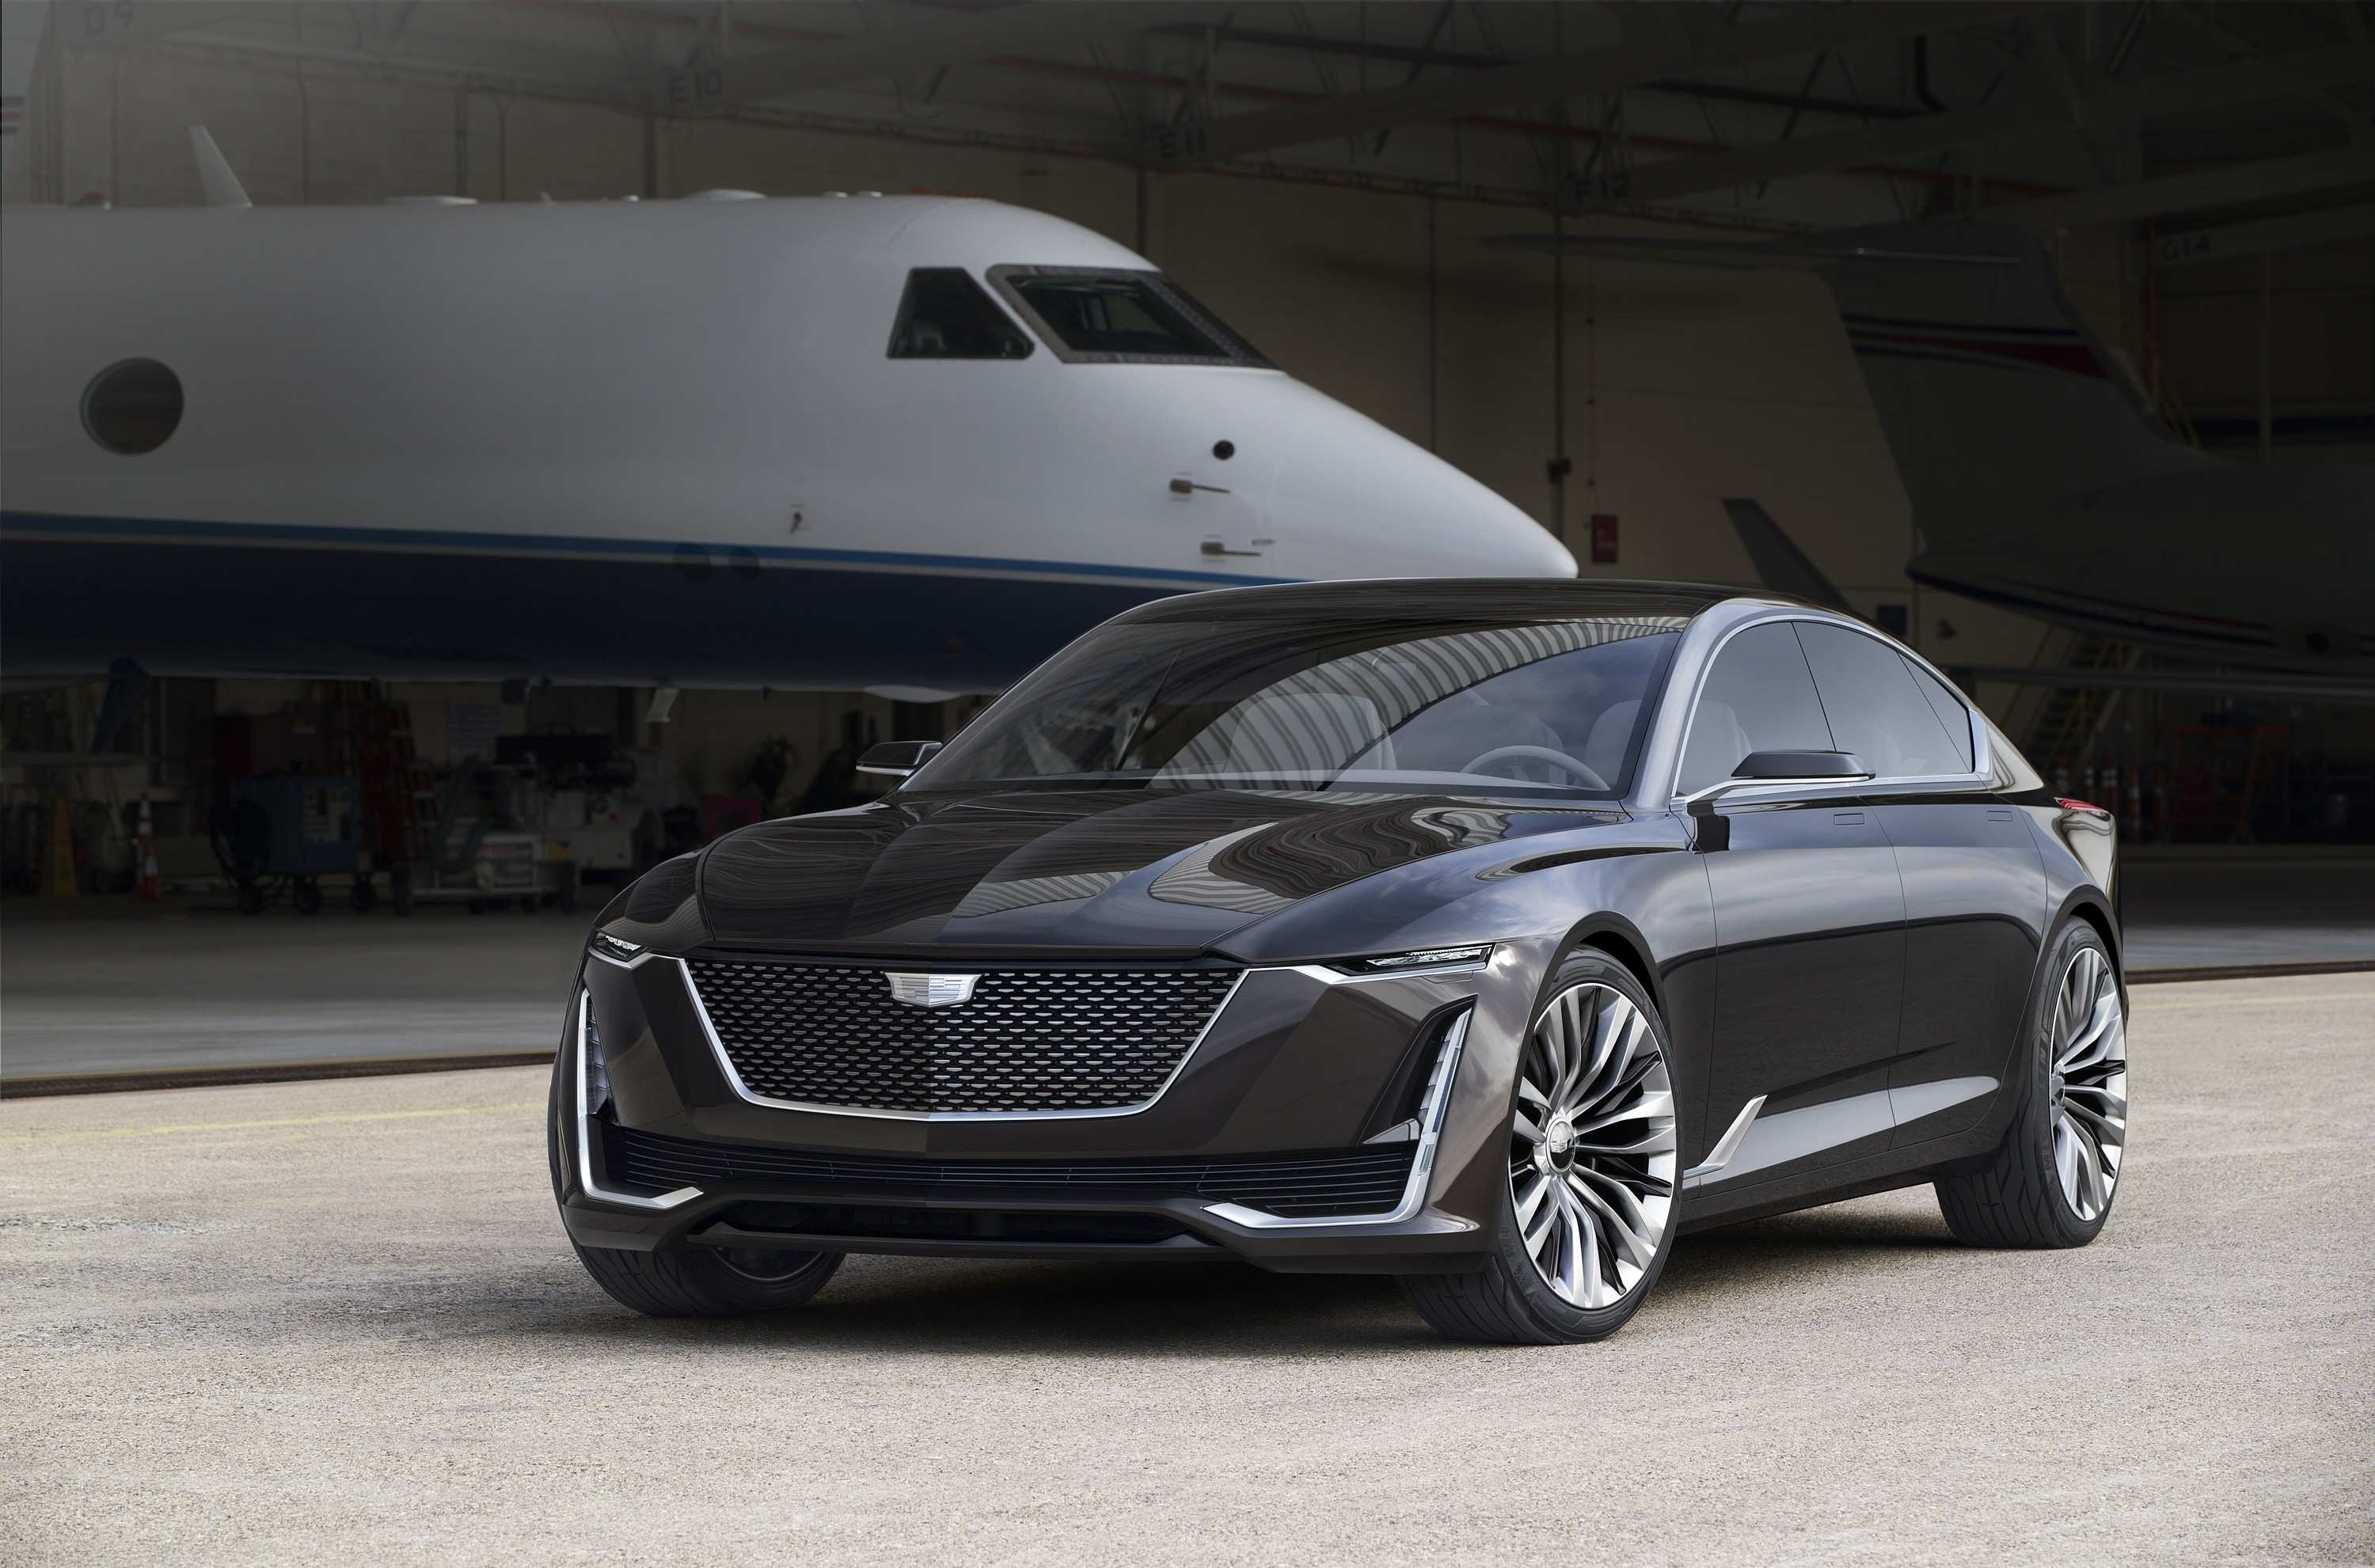 76 The Best Cadillac Cts 2020 Release Date